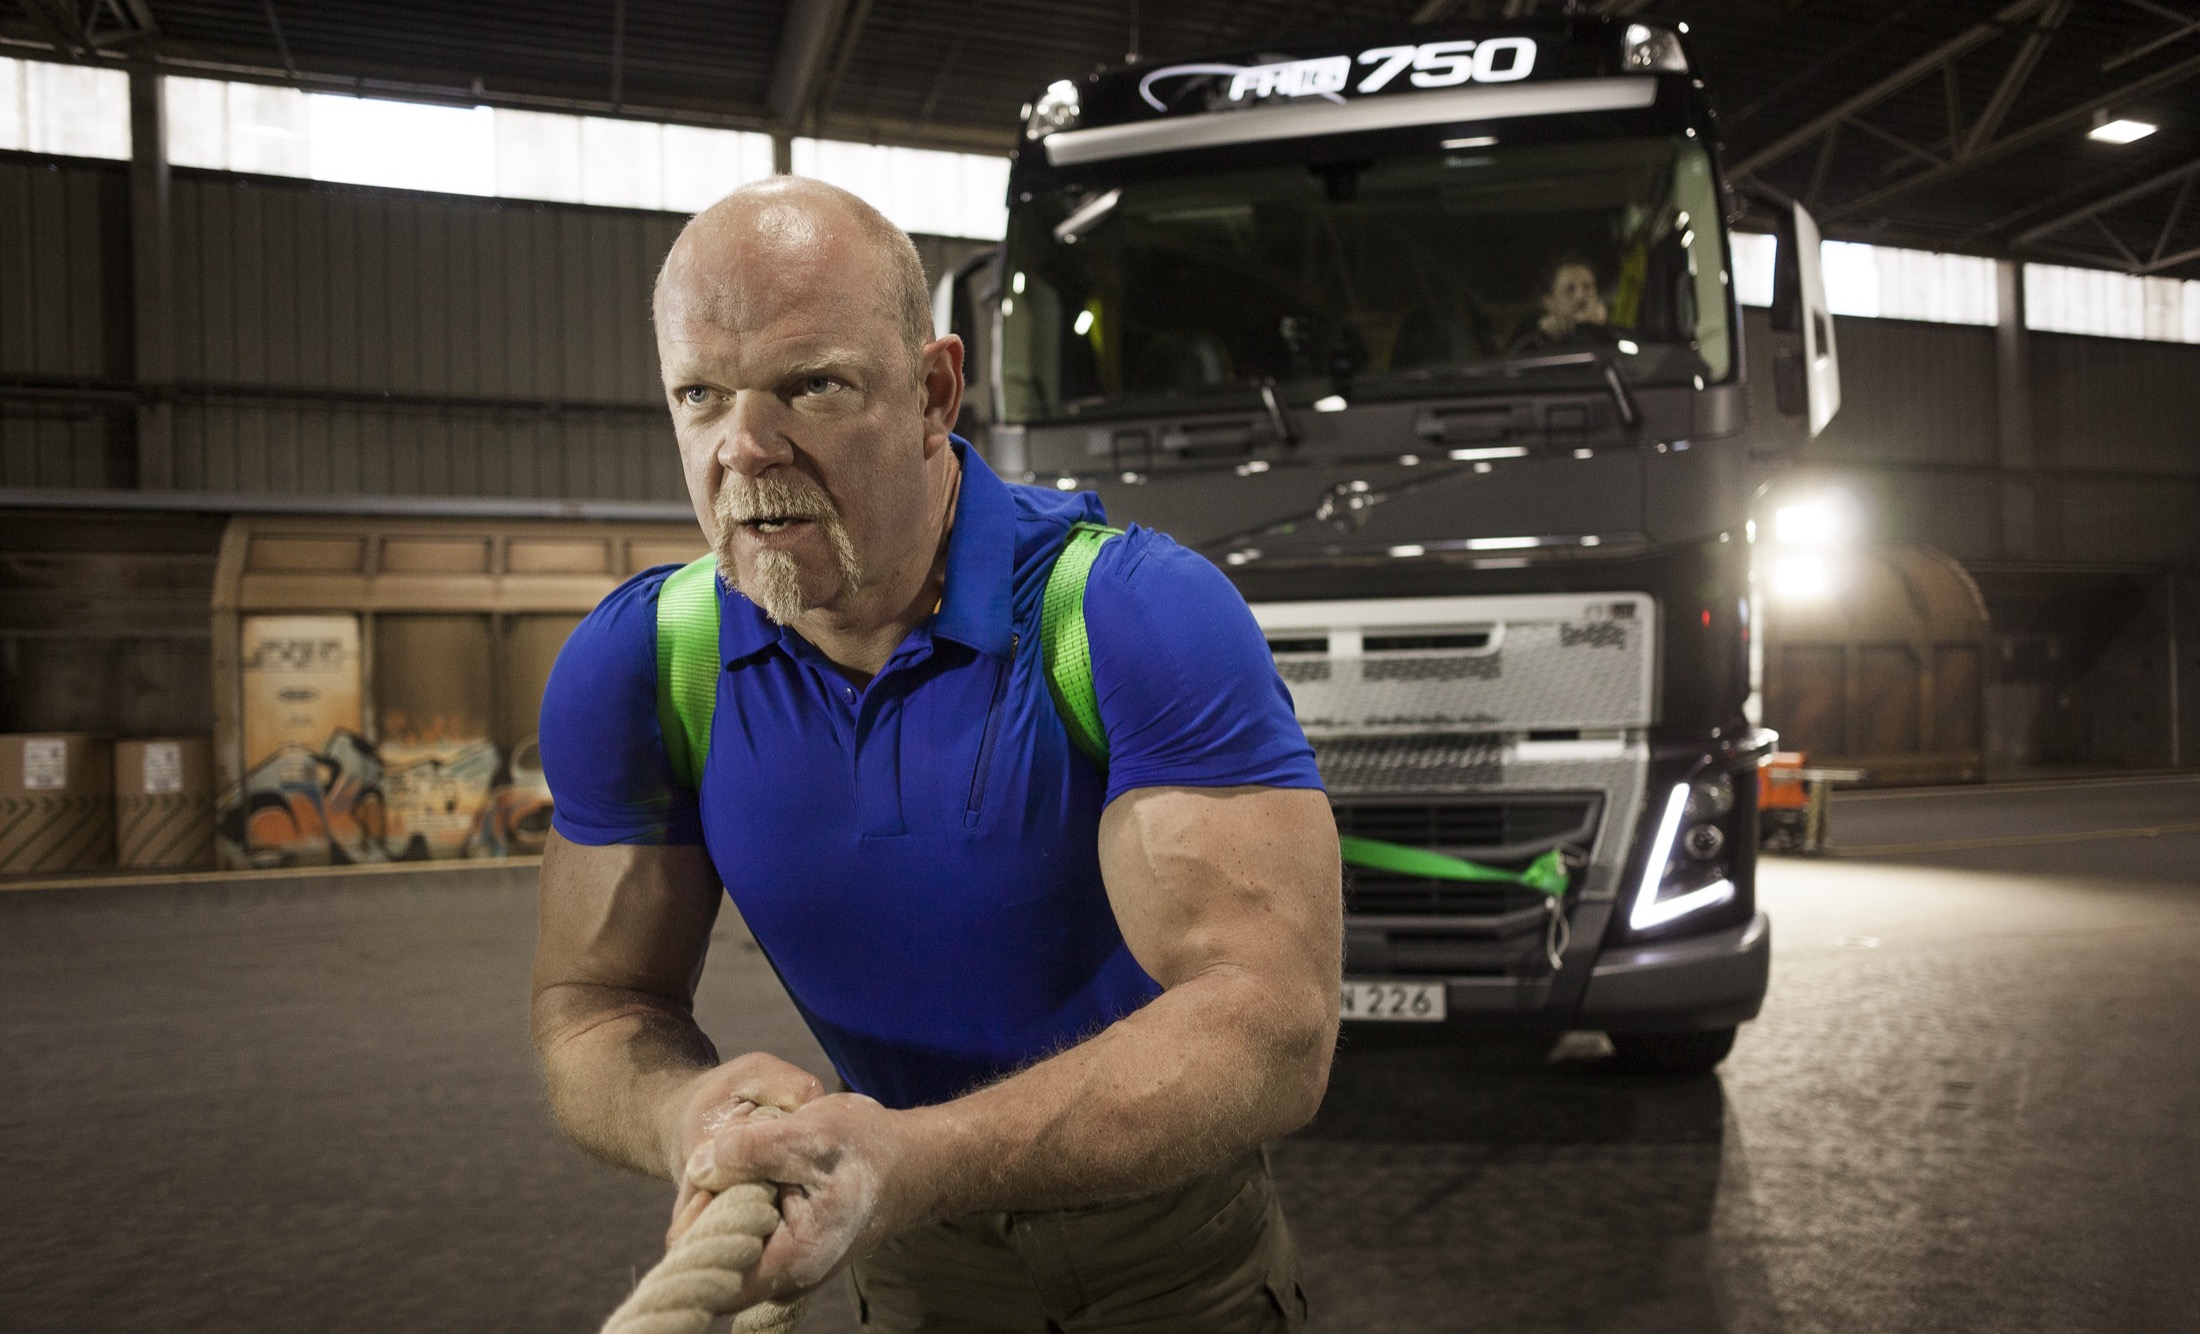 Volvo Trucks and the world's strongest man team up for an extreme heavy haulage challenge ...